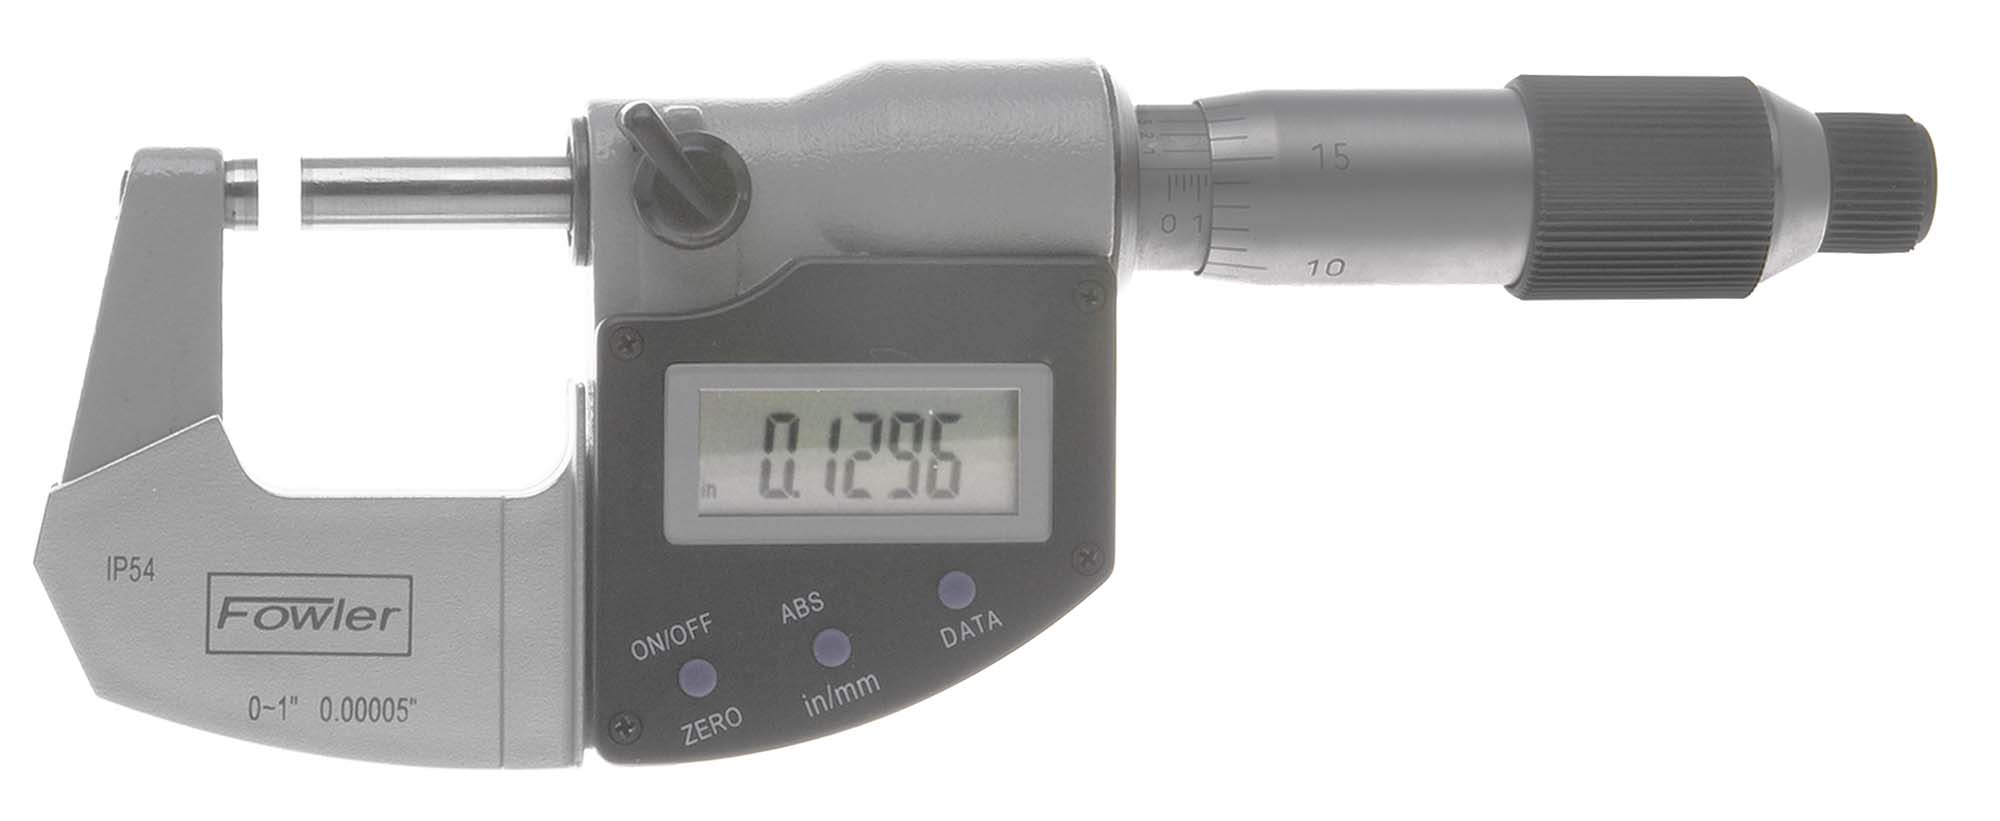 """Fowler 54-815-001 Xtra-Value 0-1""""  Electronic Micrometer - IP54"""